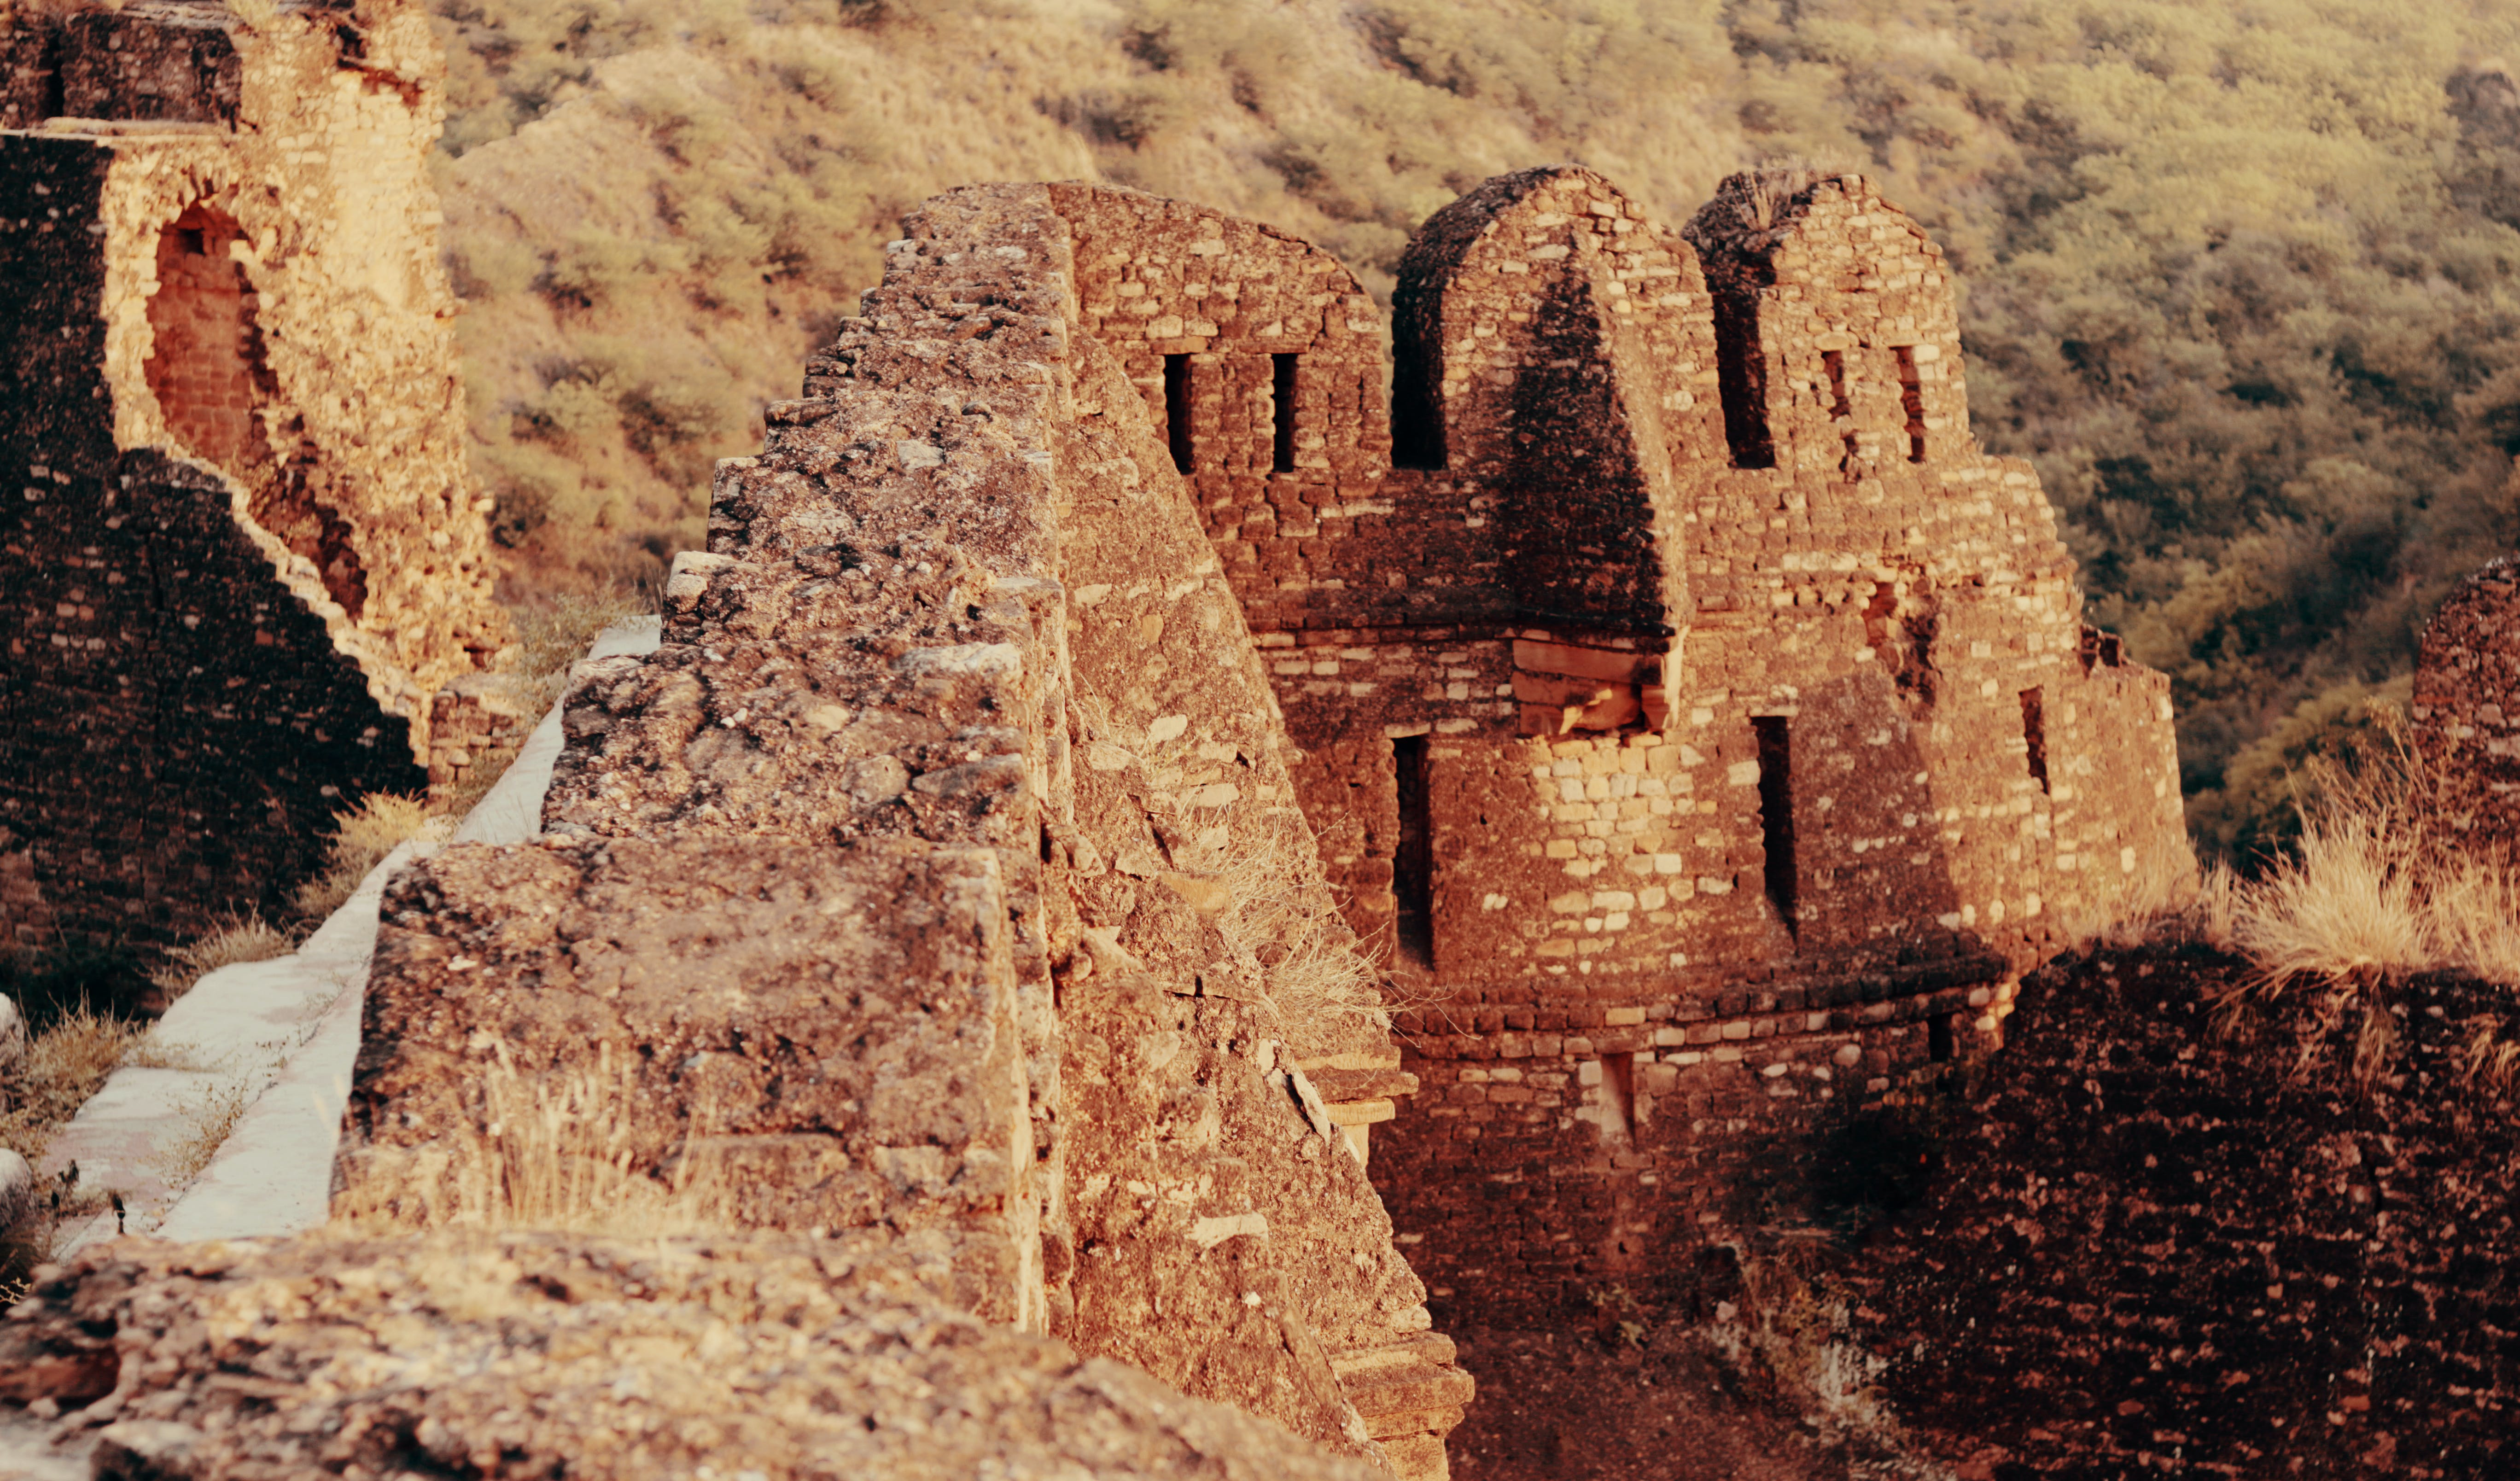 Free stock photo of forts in pakistan, old pakistan, old places in pakistan, old qila